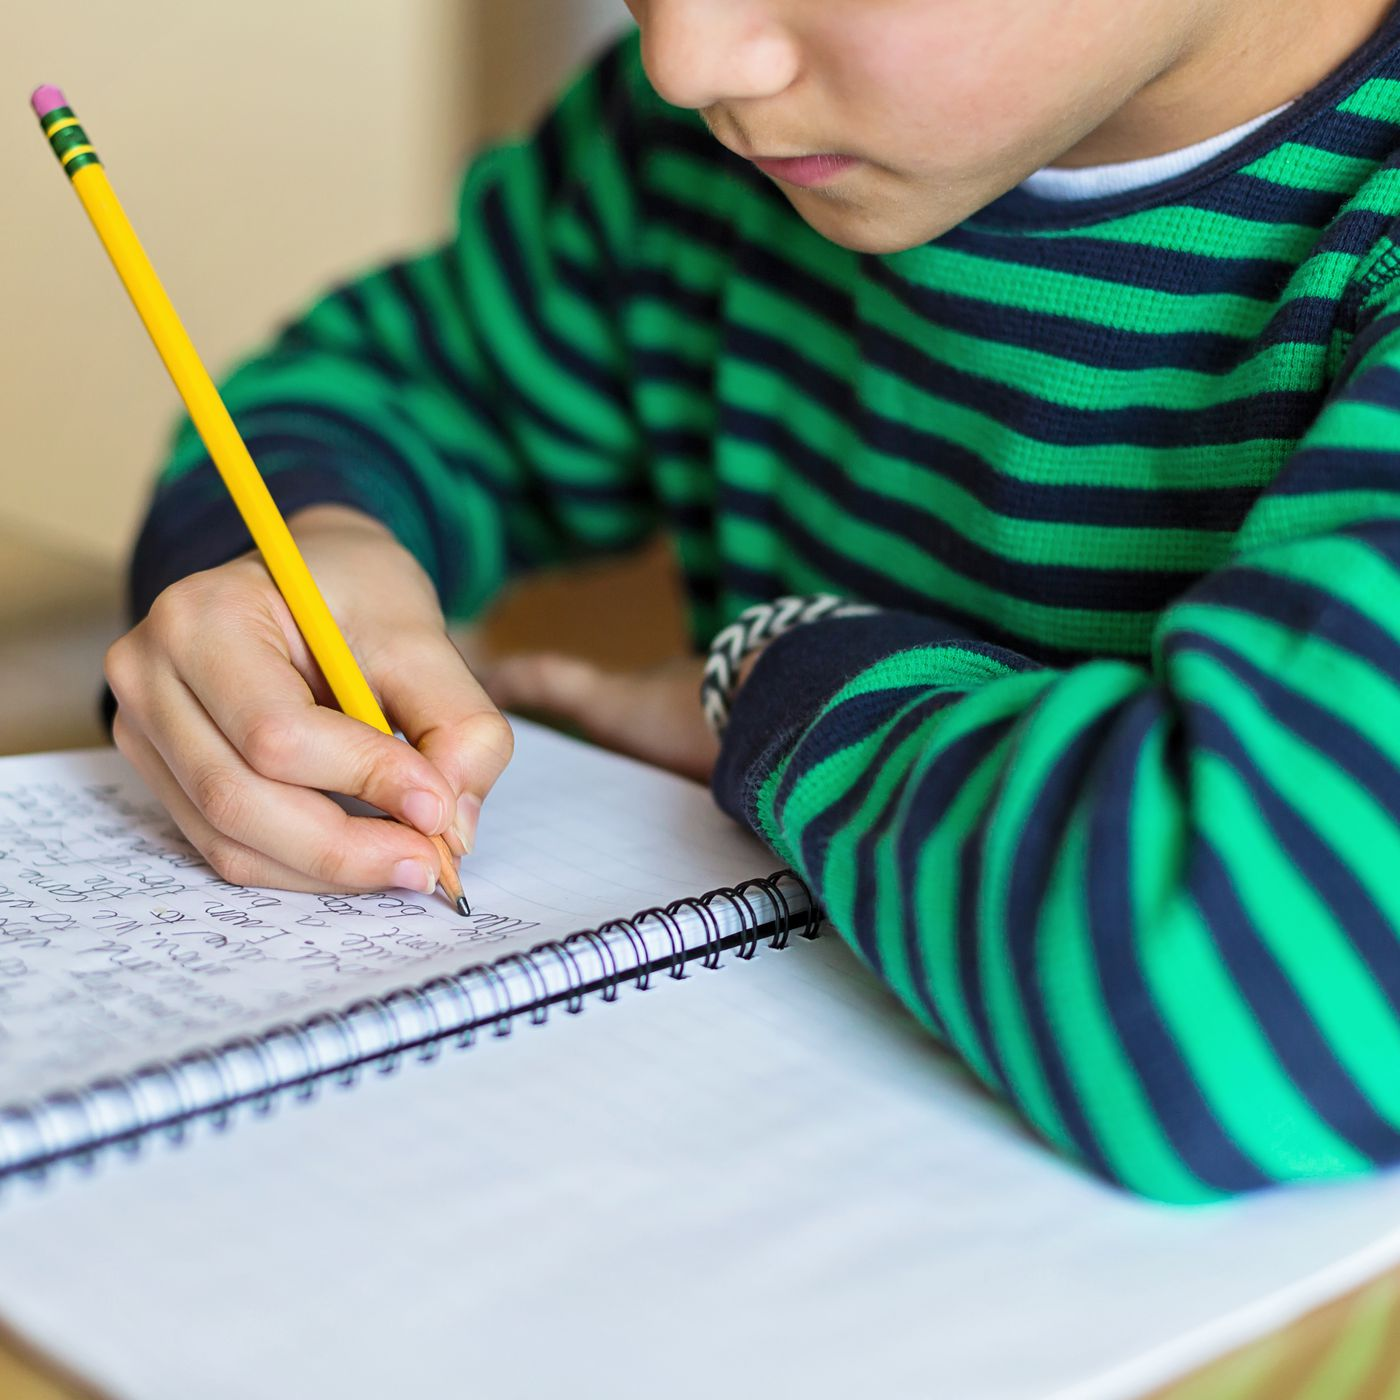 There's no reason for kids to learn cursive, but politicians